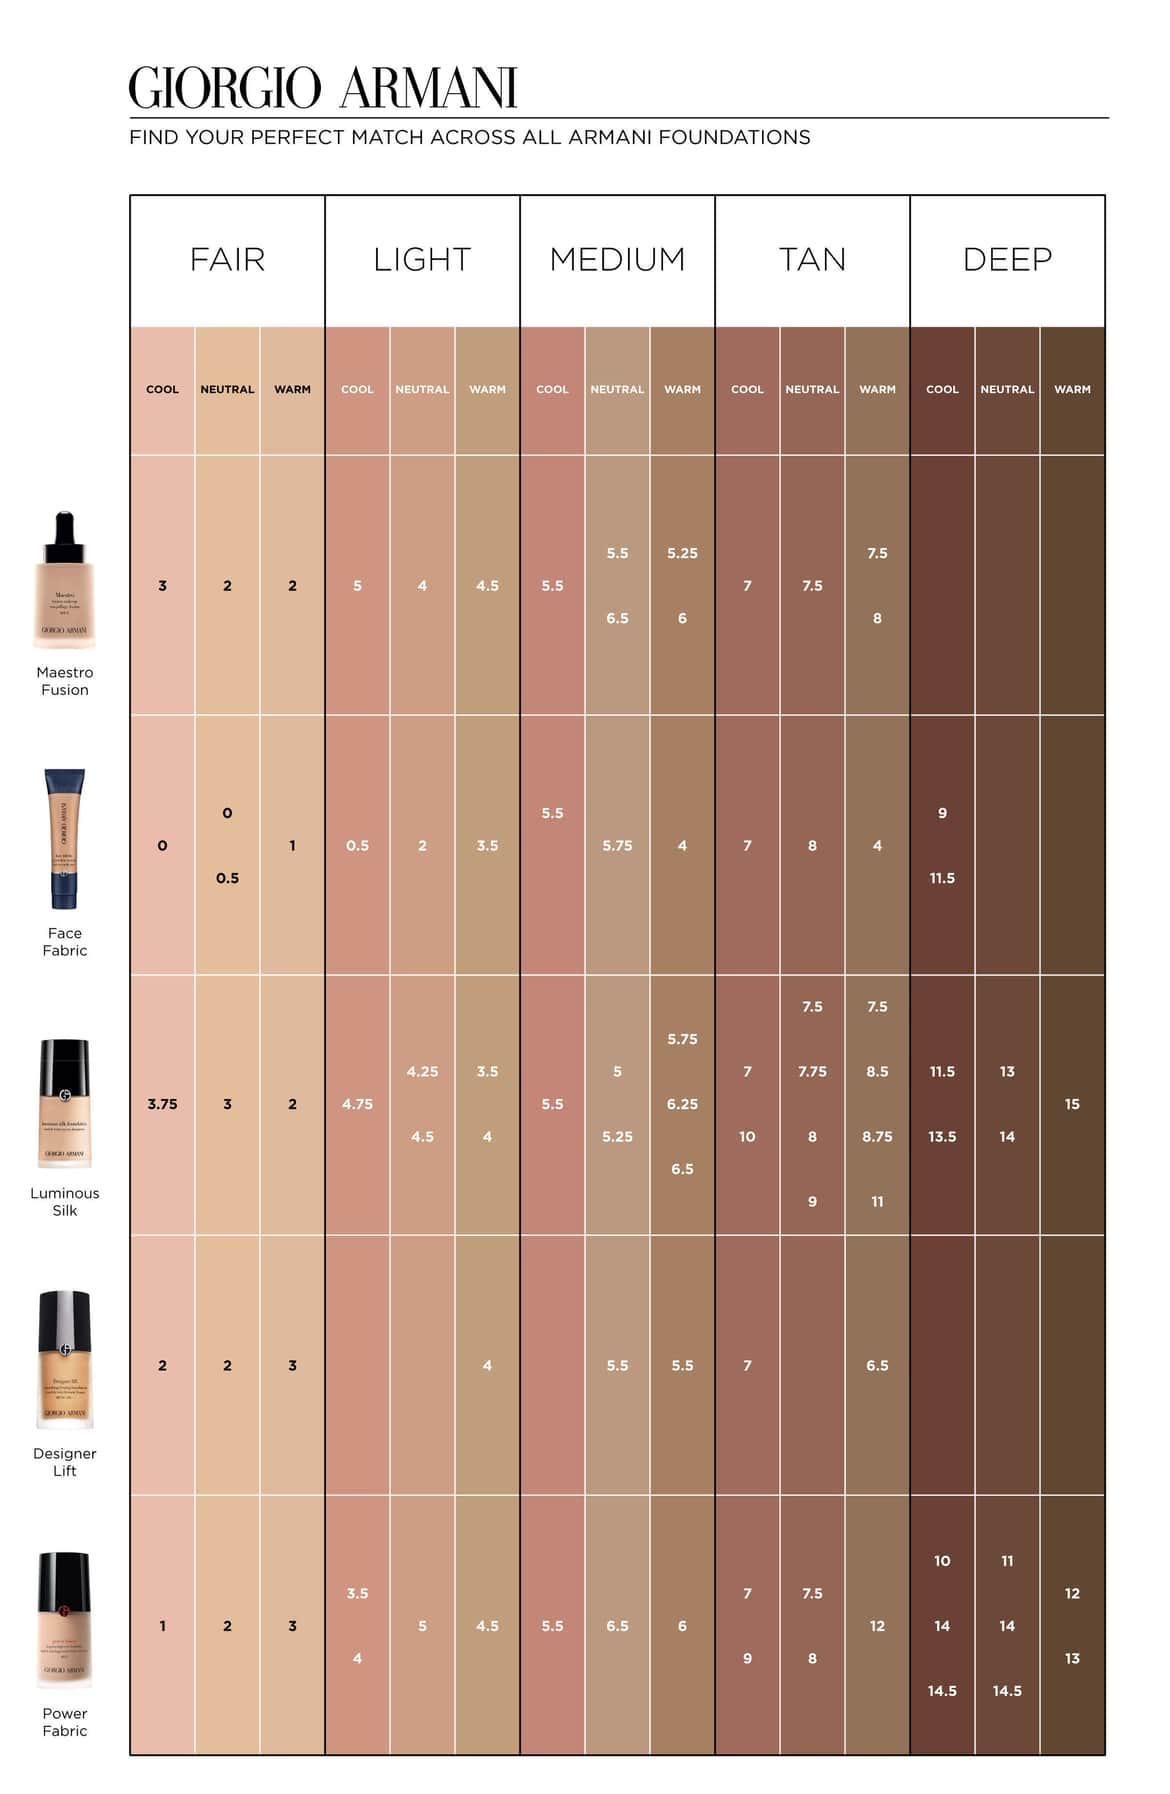 546811ed b533 4f8c 9809 b96d32bdec7c - Top 5 Most Popular Foundations of 2020 for All Skin Types